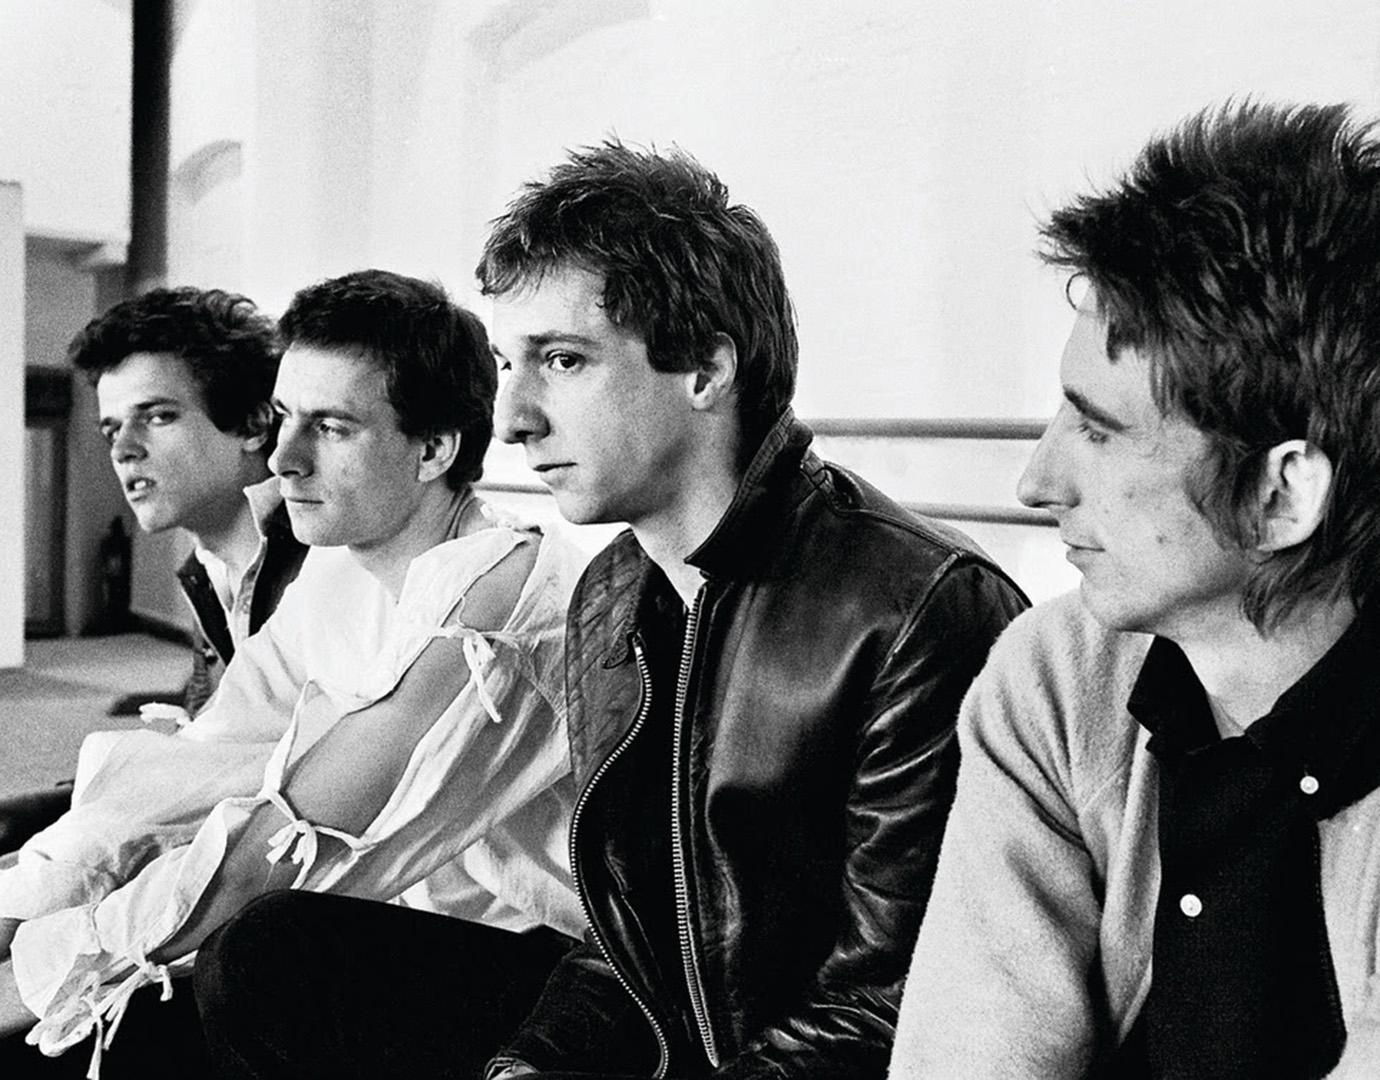 Wire reissue first three albums on their Pink Flag record label ...